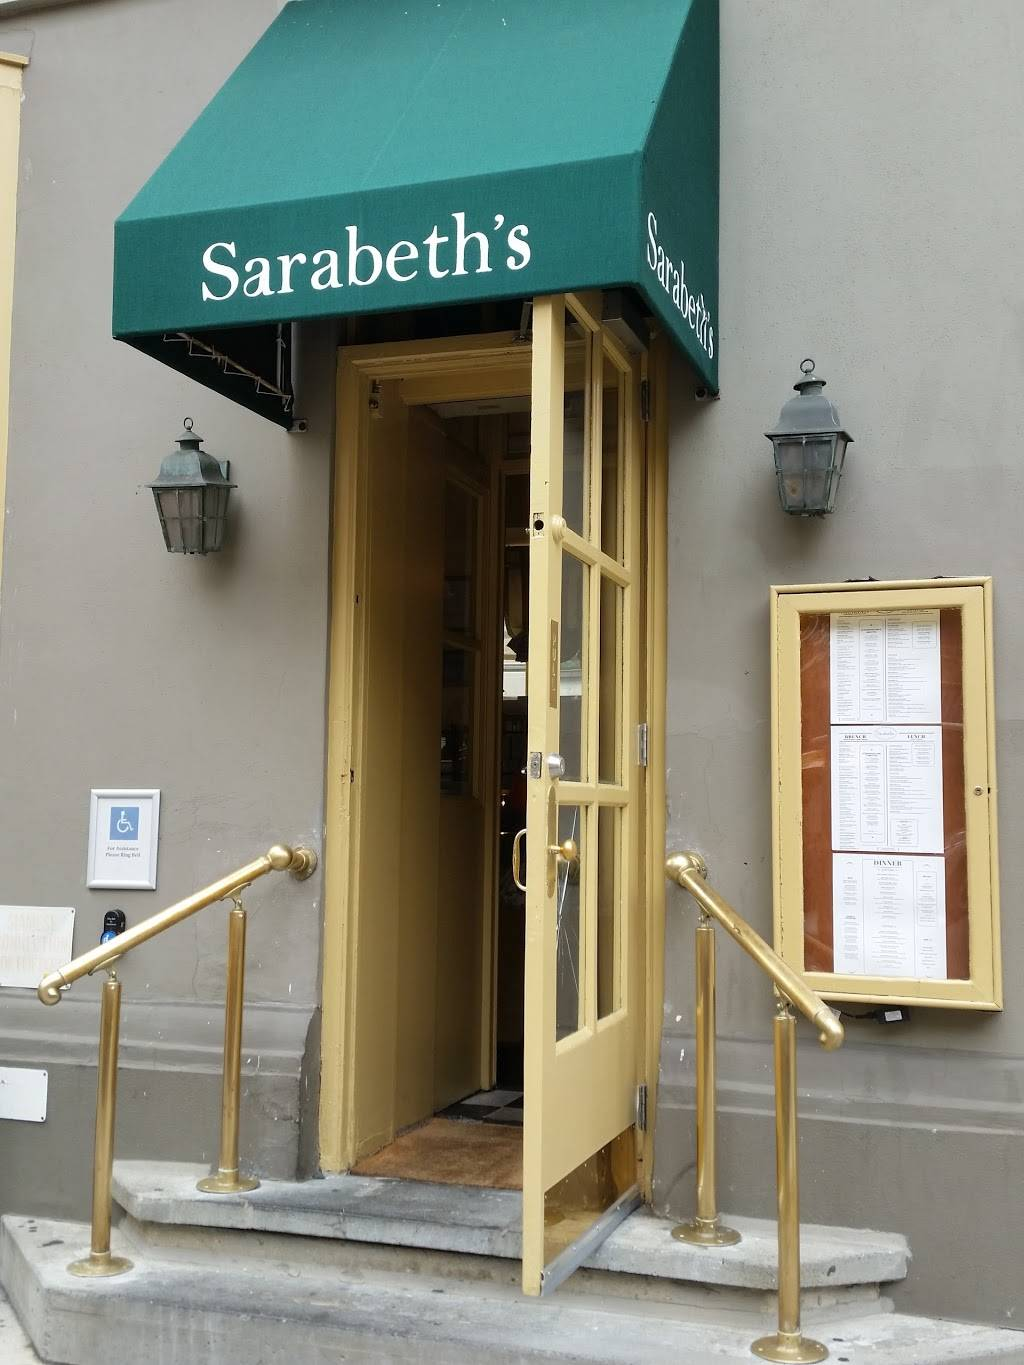 Sarabeths Upper East Side | restaurant | 1295 Madison Ave, New York, NY 10128, USA | 2124107335 OR +1 212-410-7335